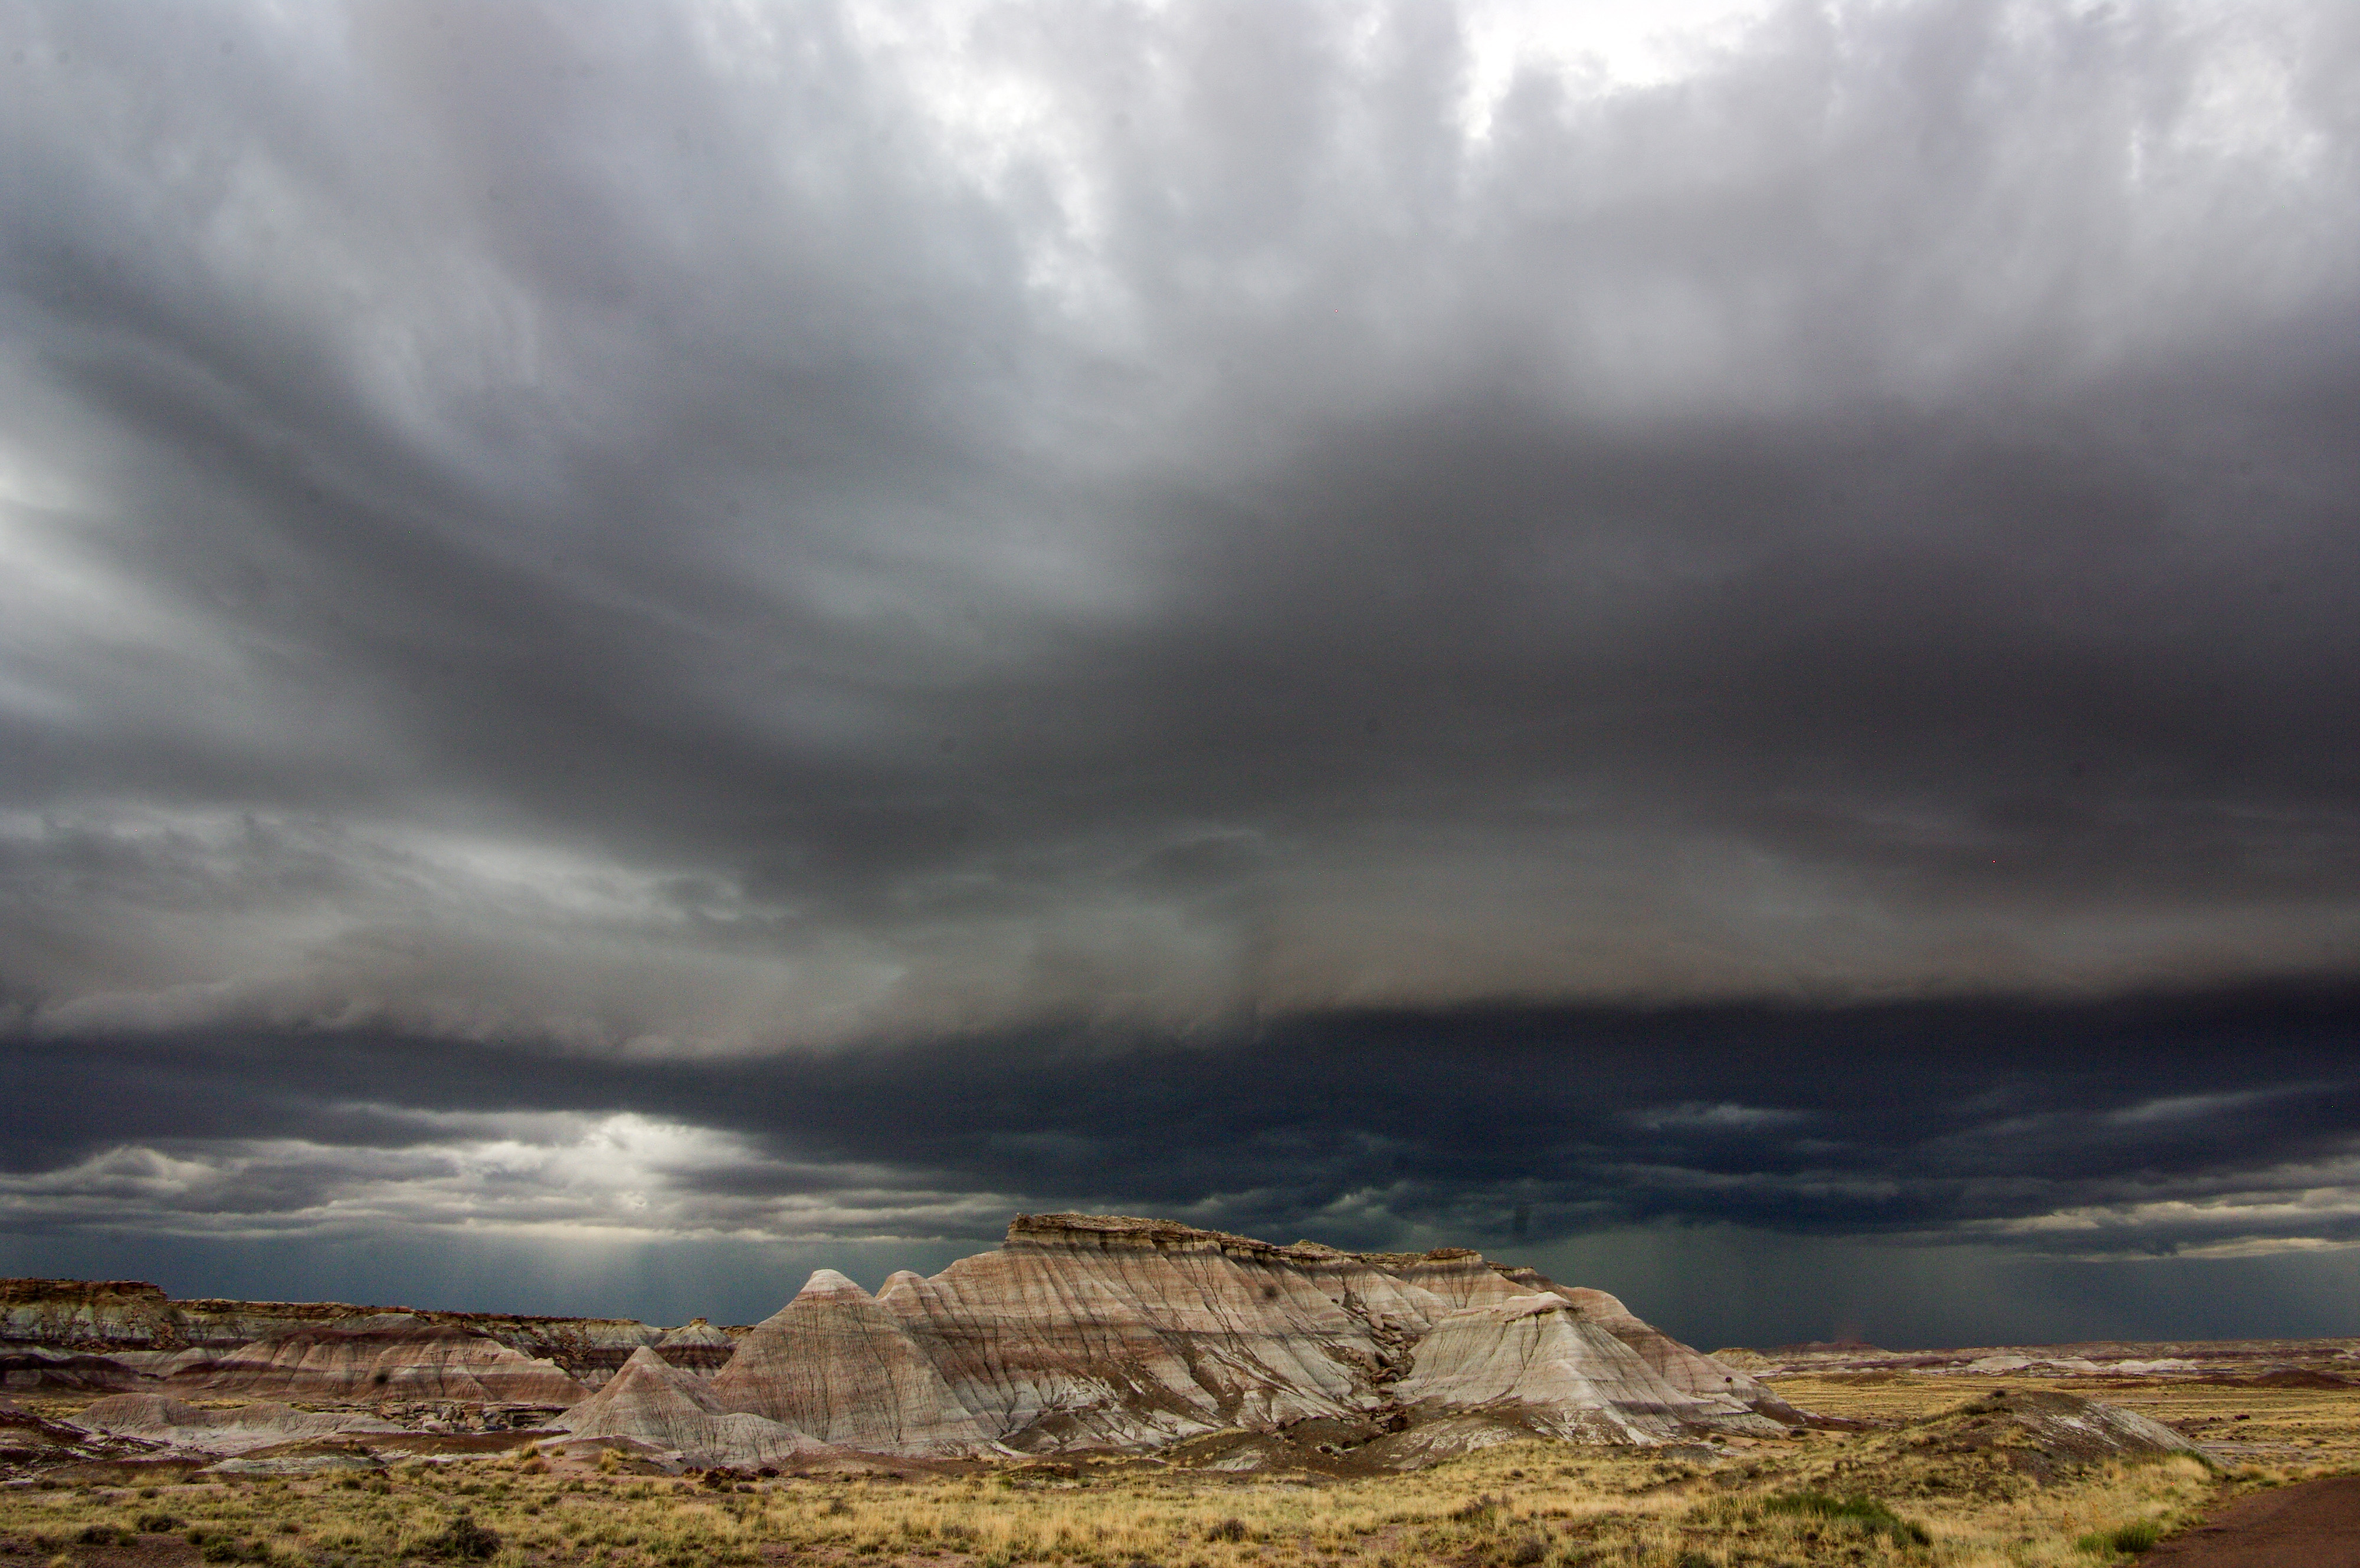 Storm Clouds over the Petrified Forest Landscape image ...